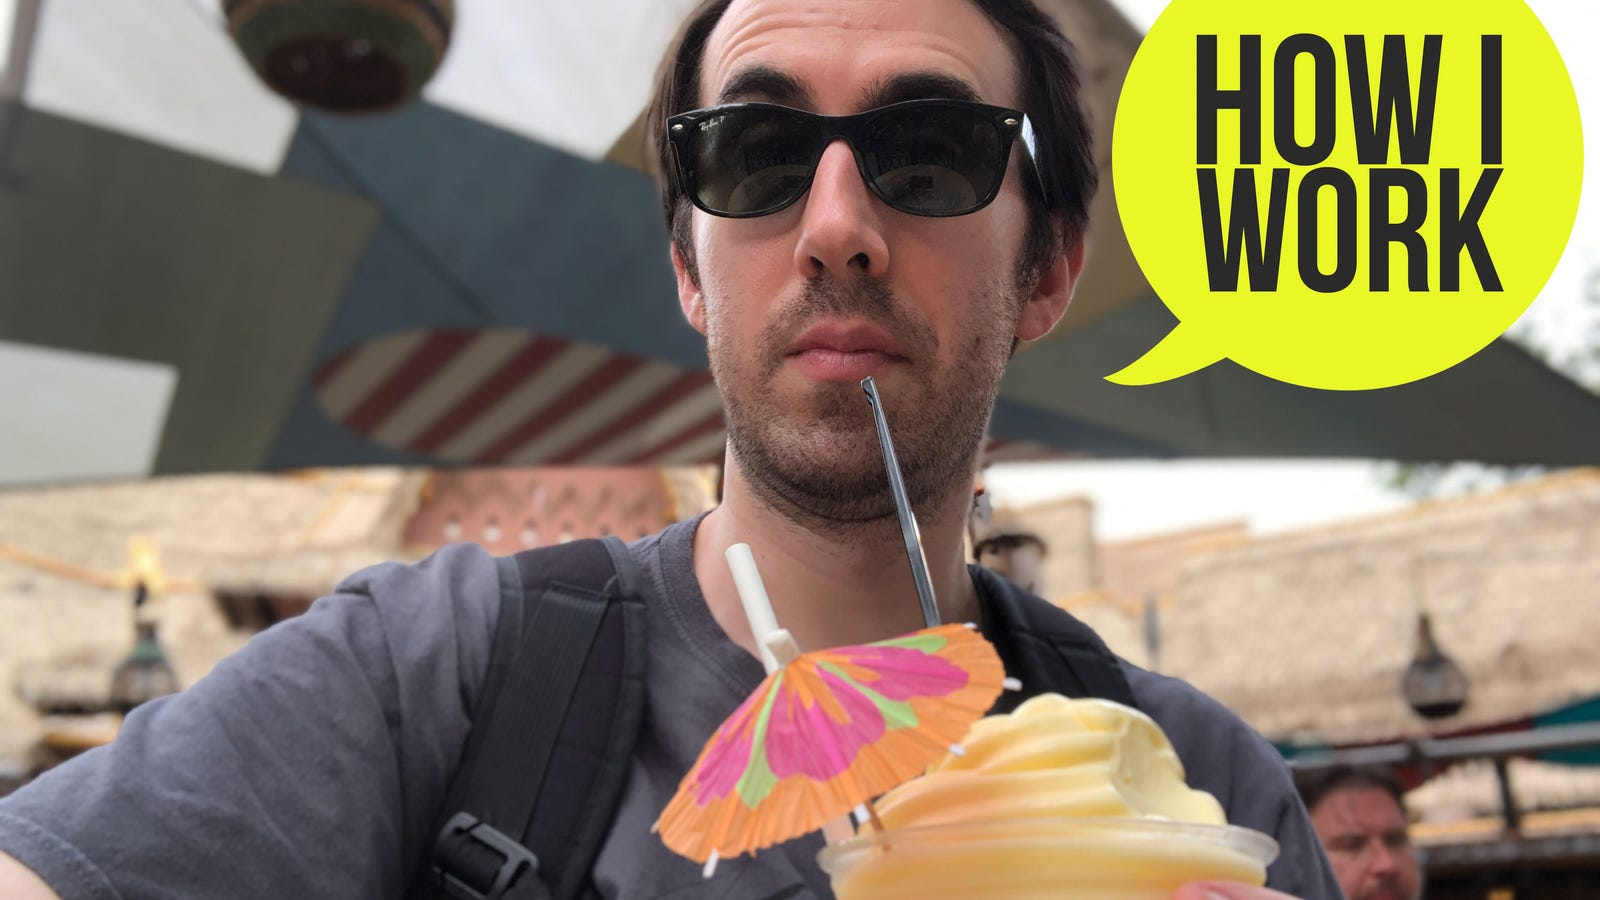 I'm David Murphy, Lifehacker Technology Editor, and This Is How I Work